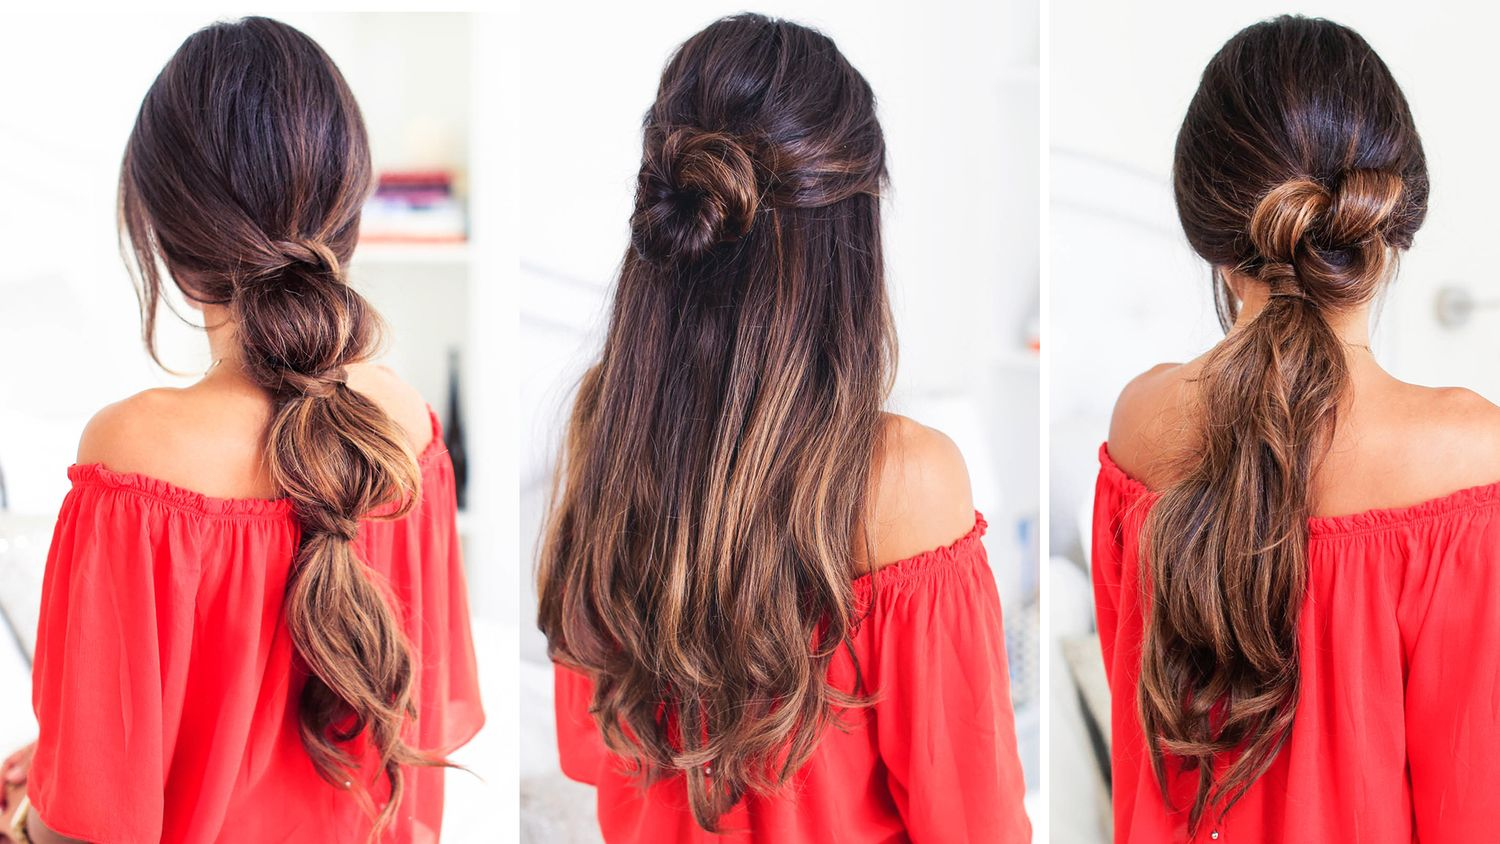 3 Lazy Hairstyles For Lazy Days Lazy Hairstyles Lazy Girl Hairstyles Lazy Day Hairstyles